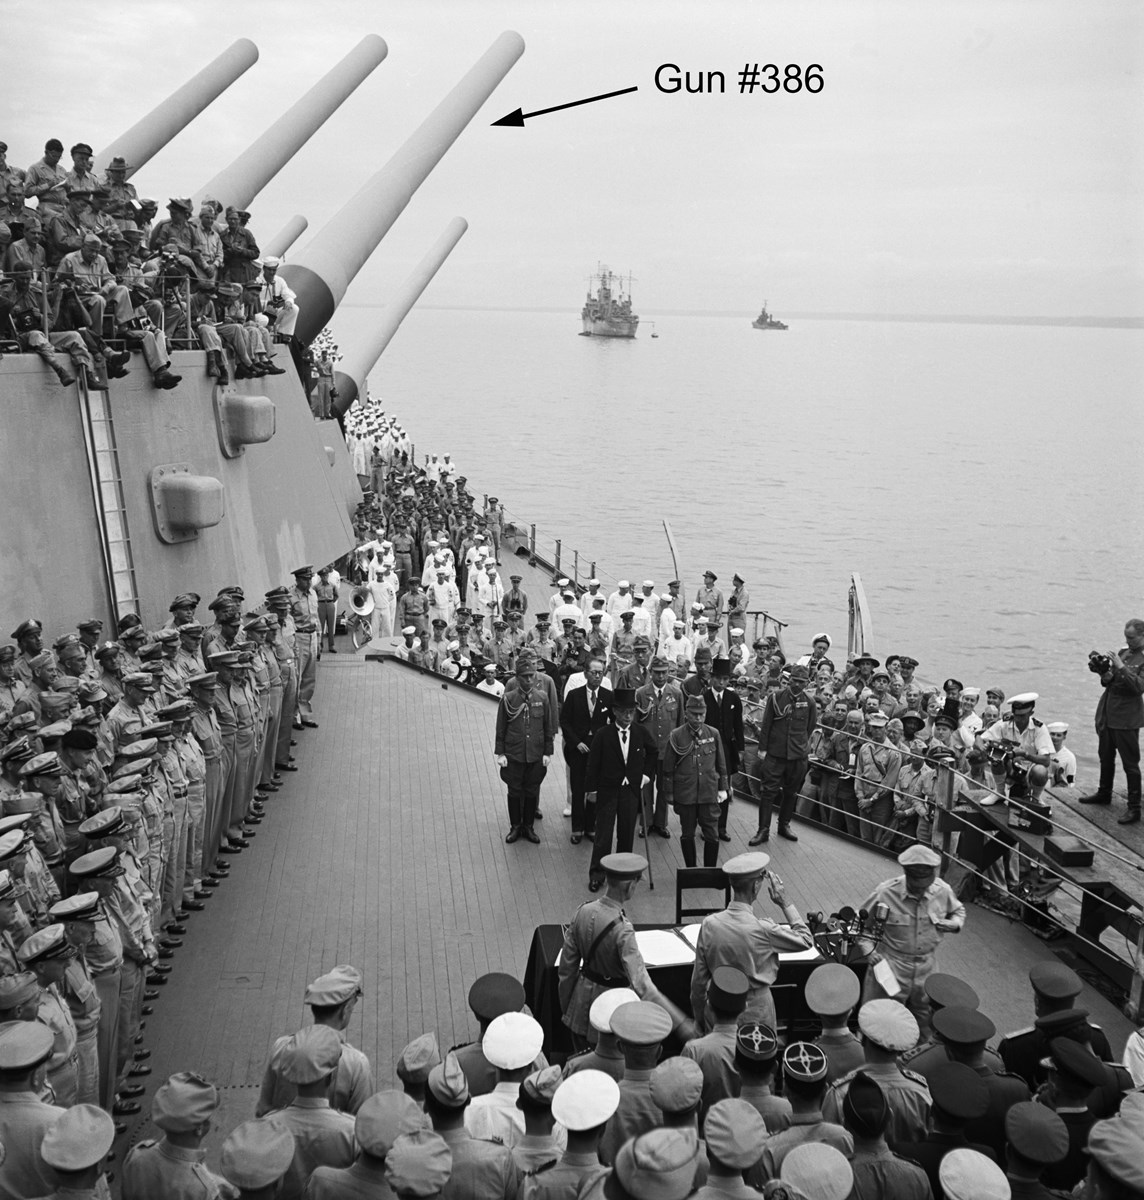 historic image of Japanese surrender on the USS Missouri, 1945